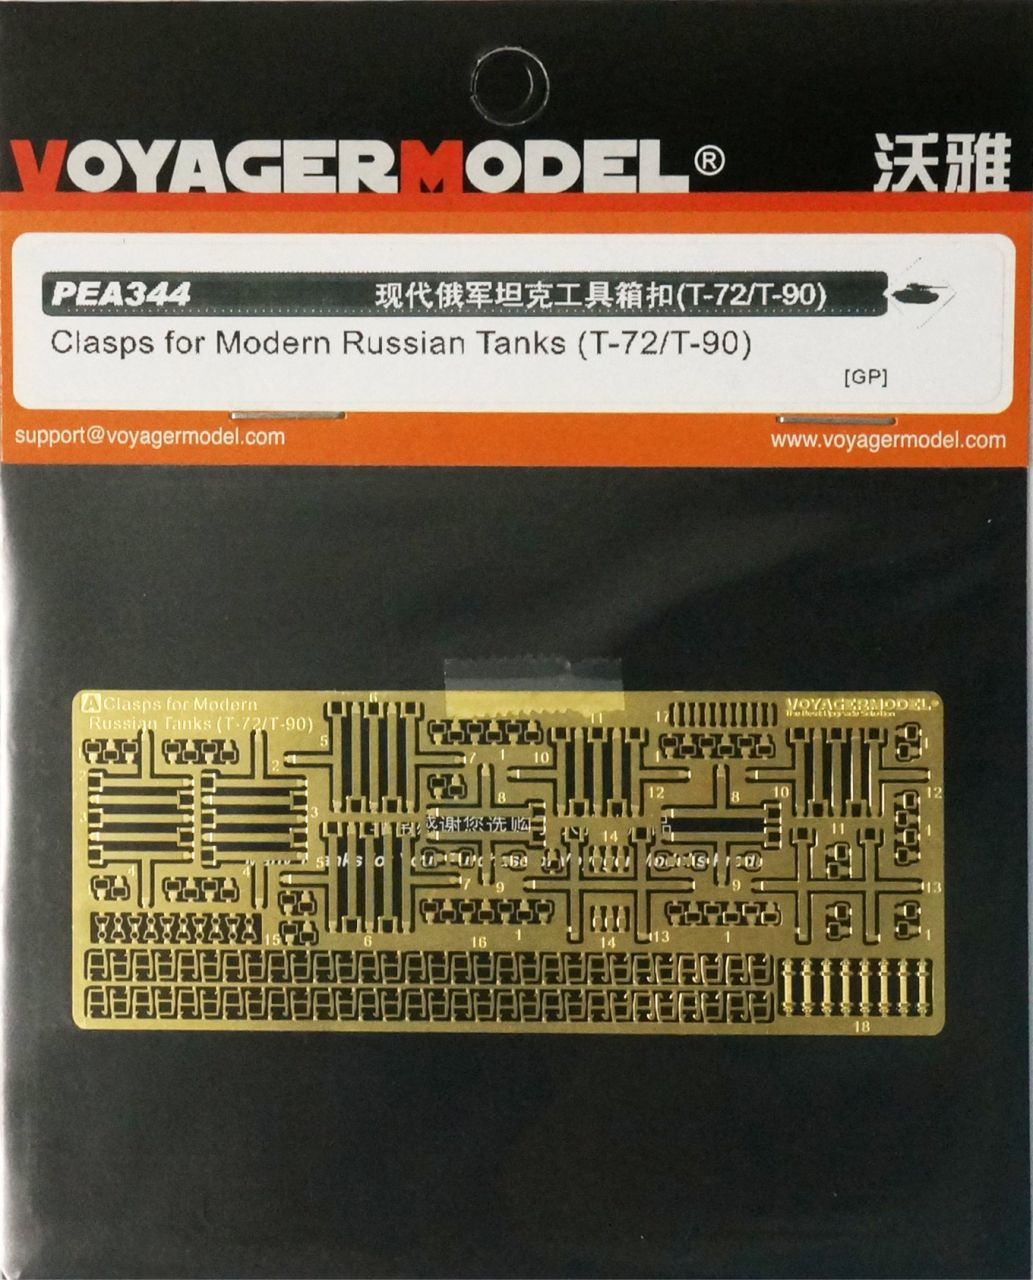 Voyager Model PEA344 Clasps for Modern Russian Tanks (T-72/T-90)